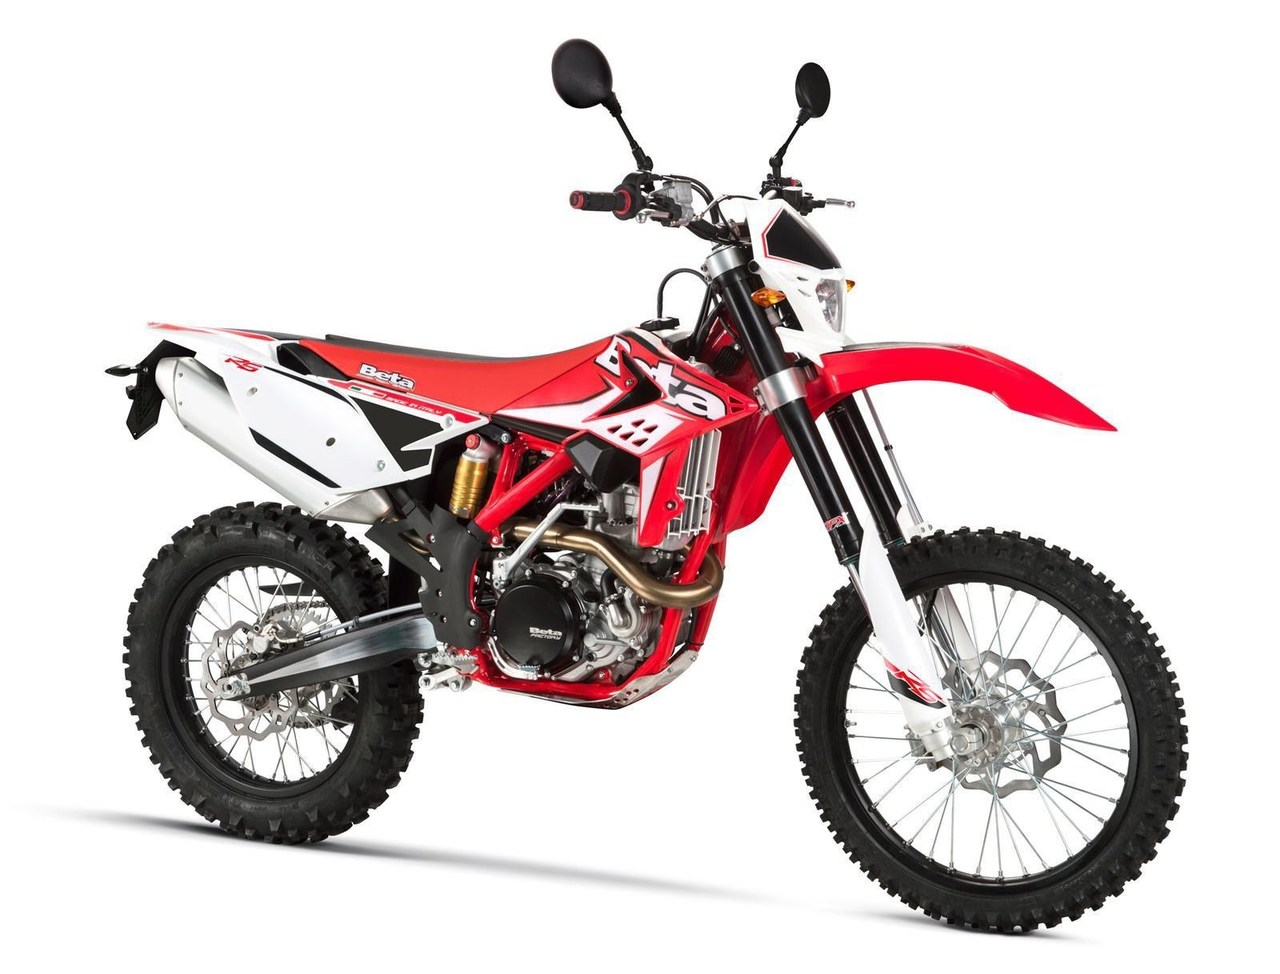 2015 Beta 430 RS Dual Sport, motorcycle listing